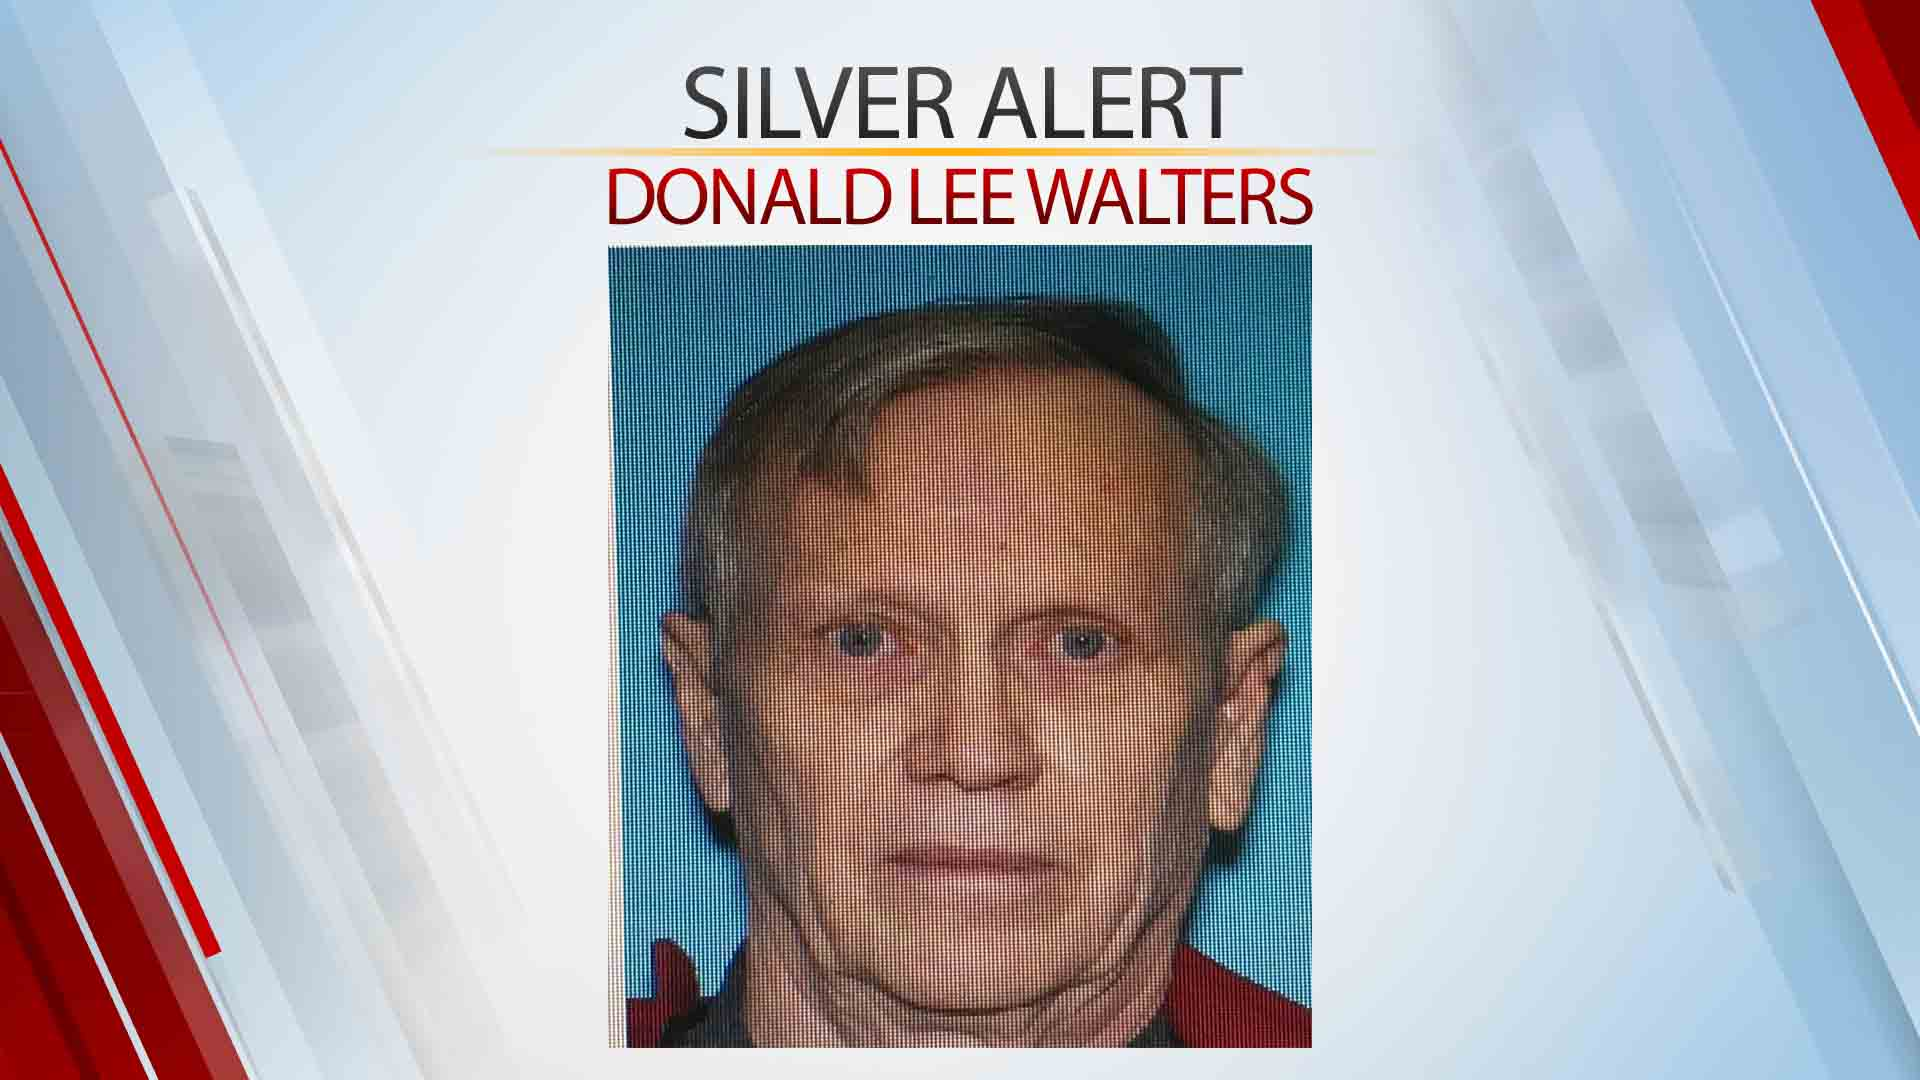 Okmulgee County Sheriff's Office Issues Silver Alert For Missing Man With Alzheimer's